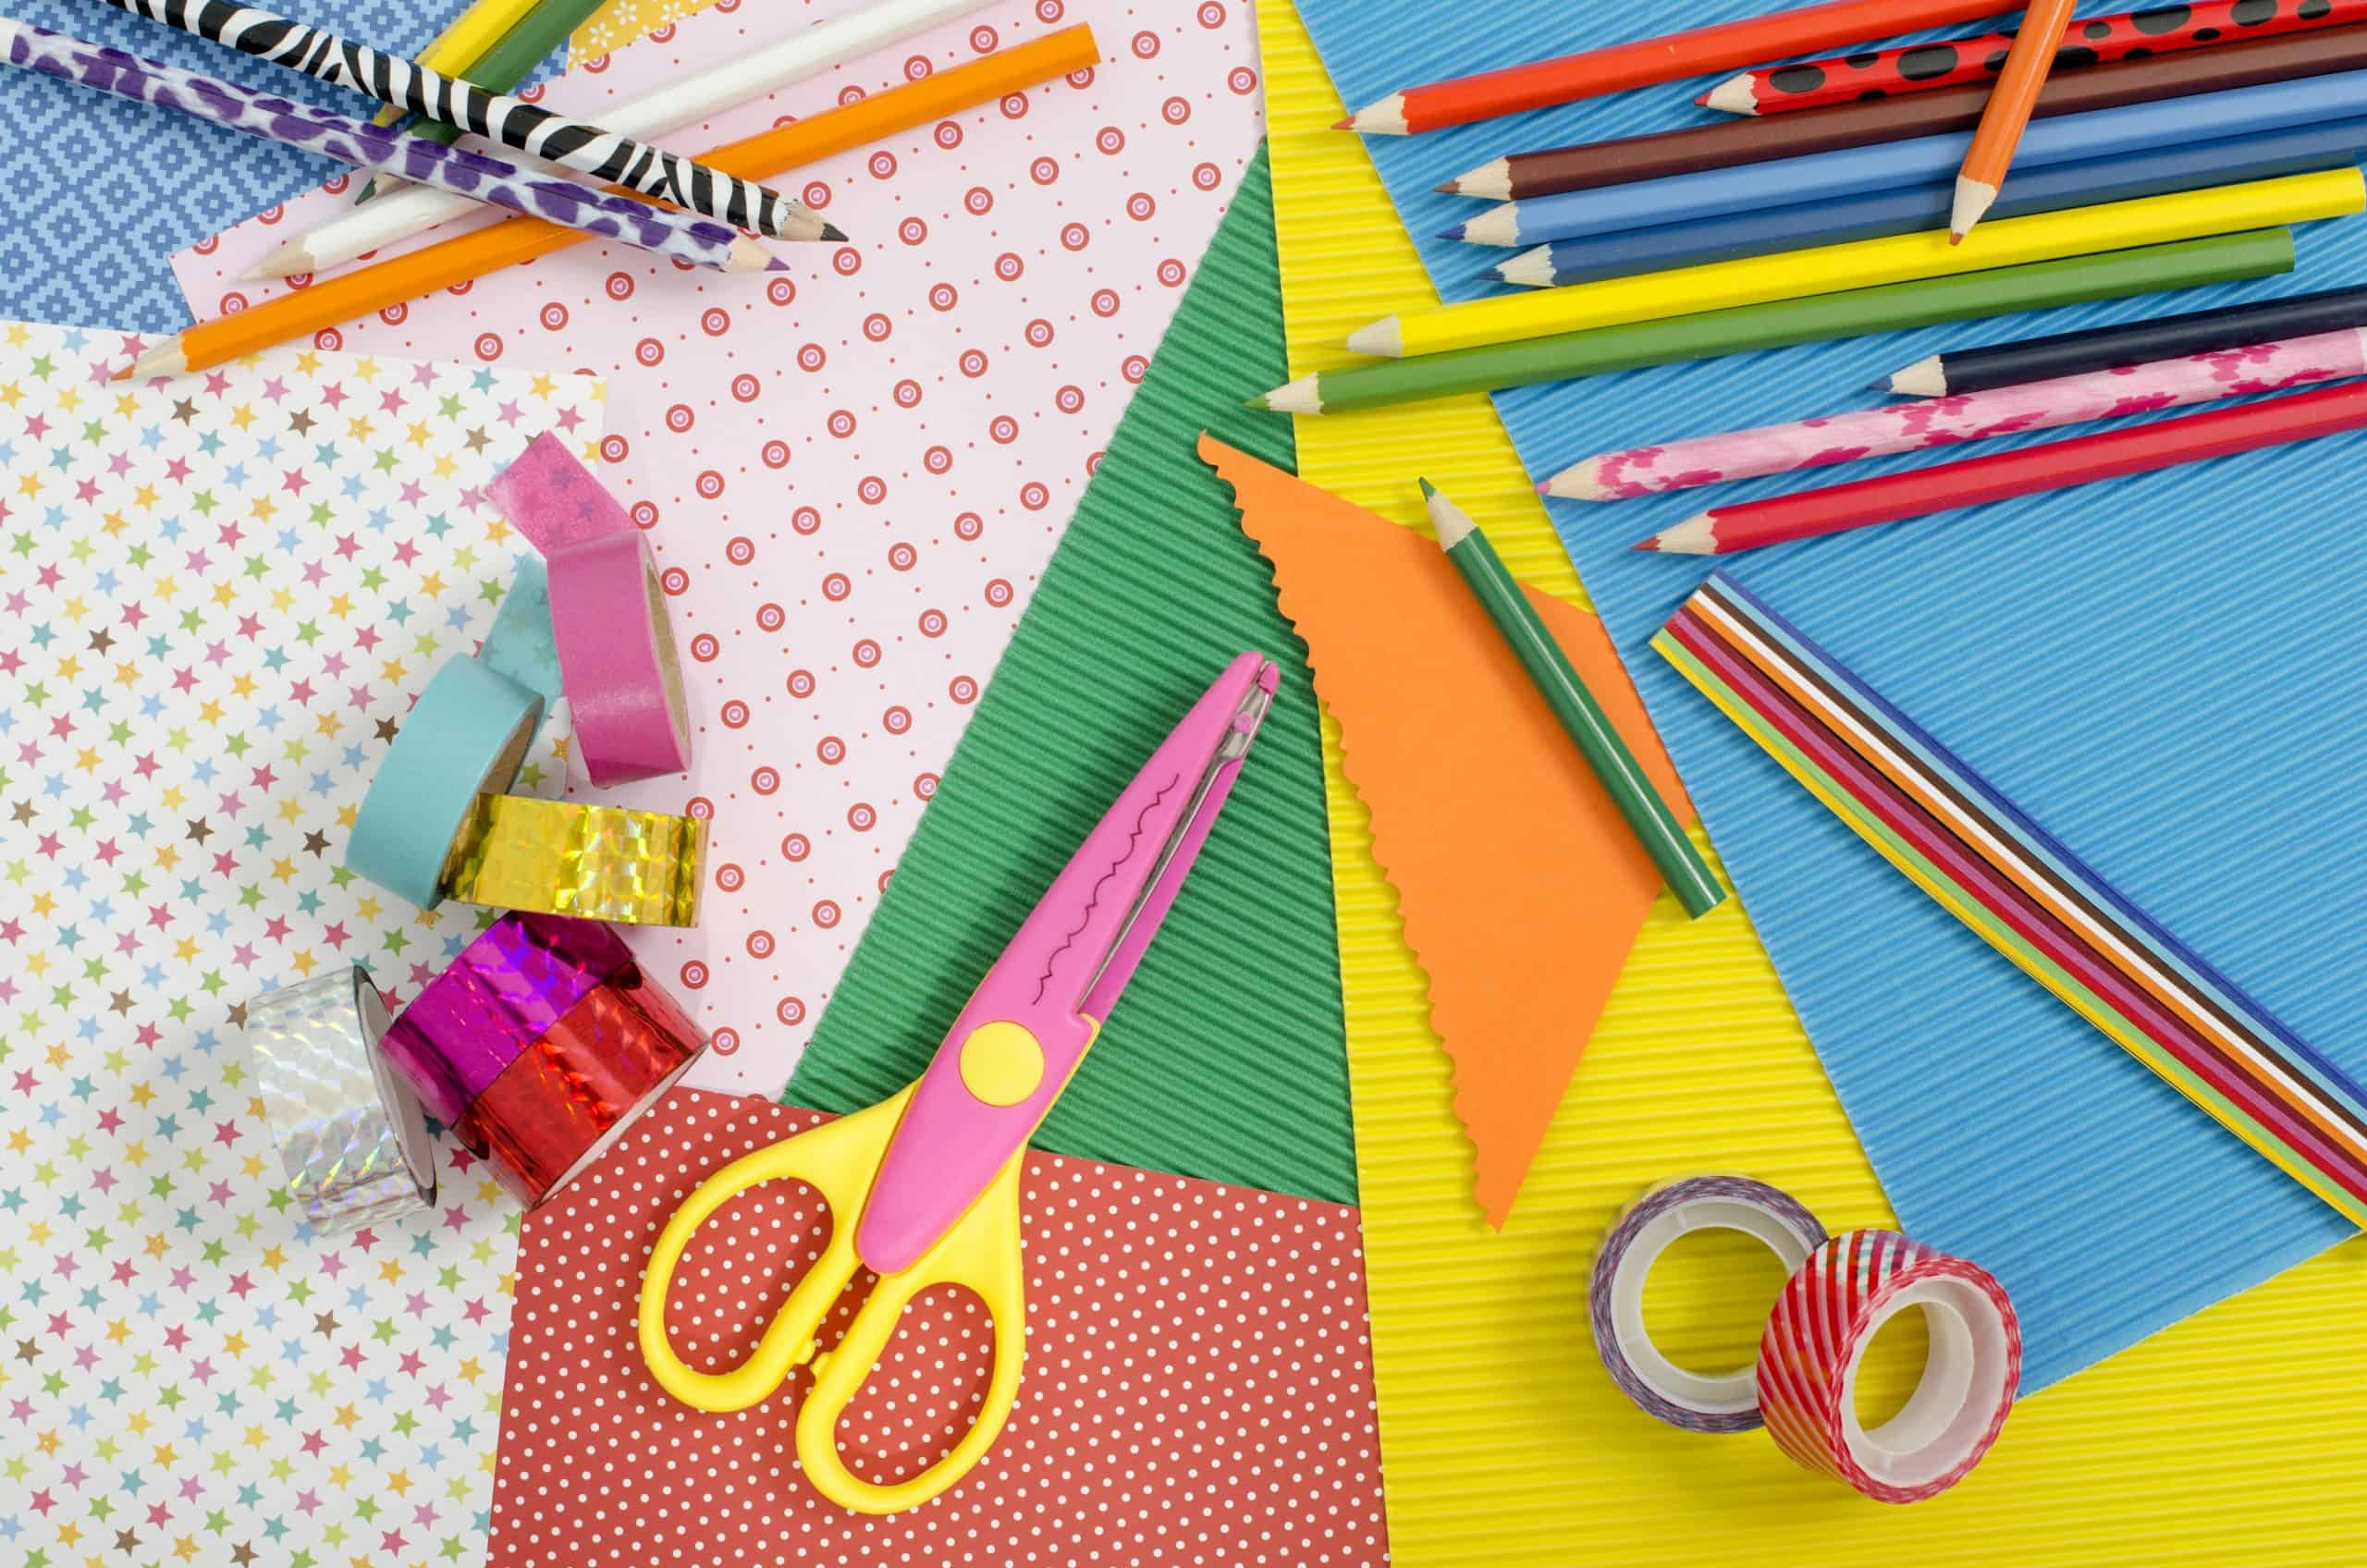 Kid and adult easy craft ideas - Color paper, pencils, different washi tapes, craft scissors.